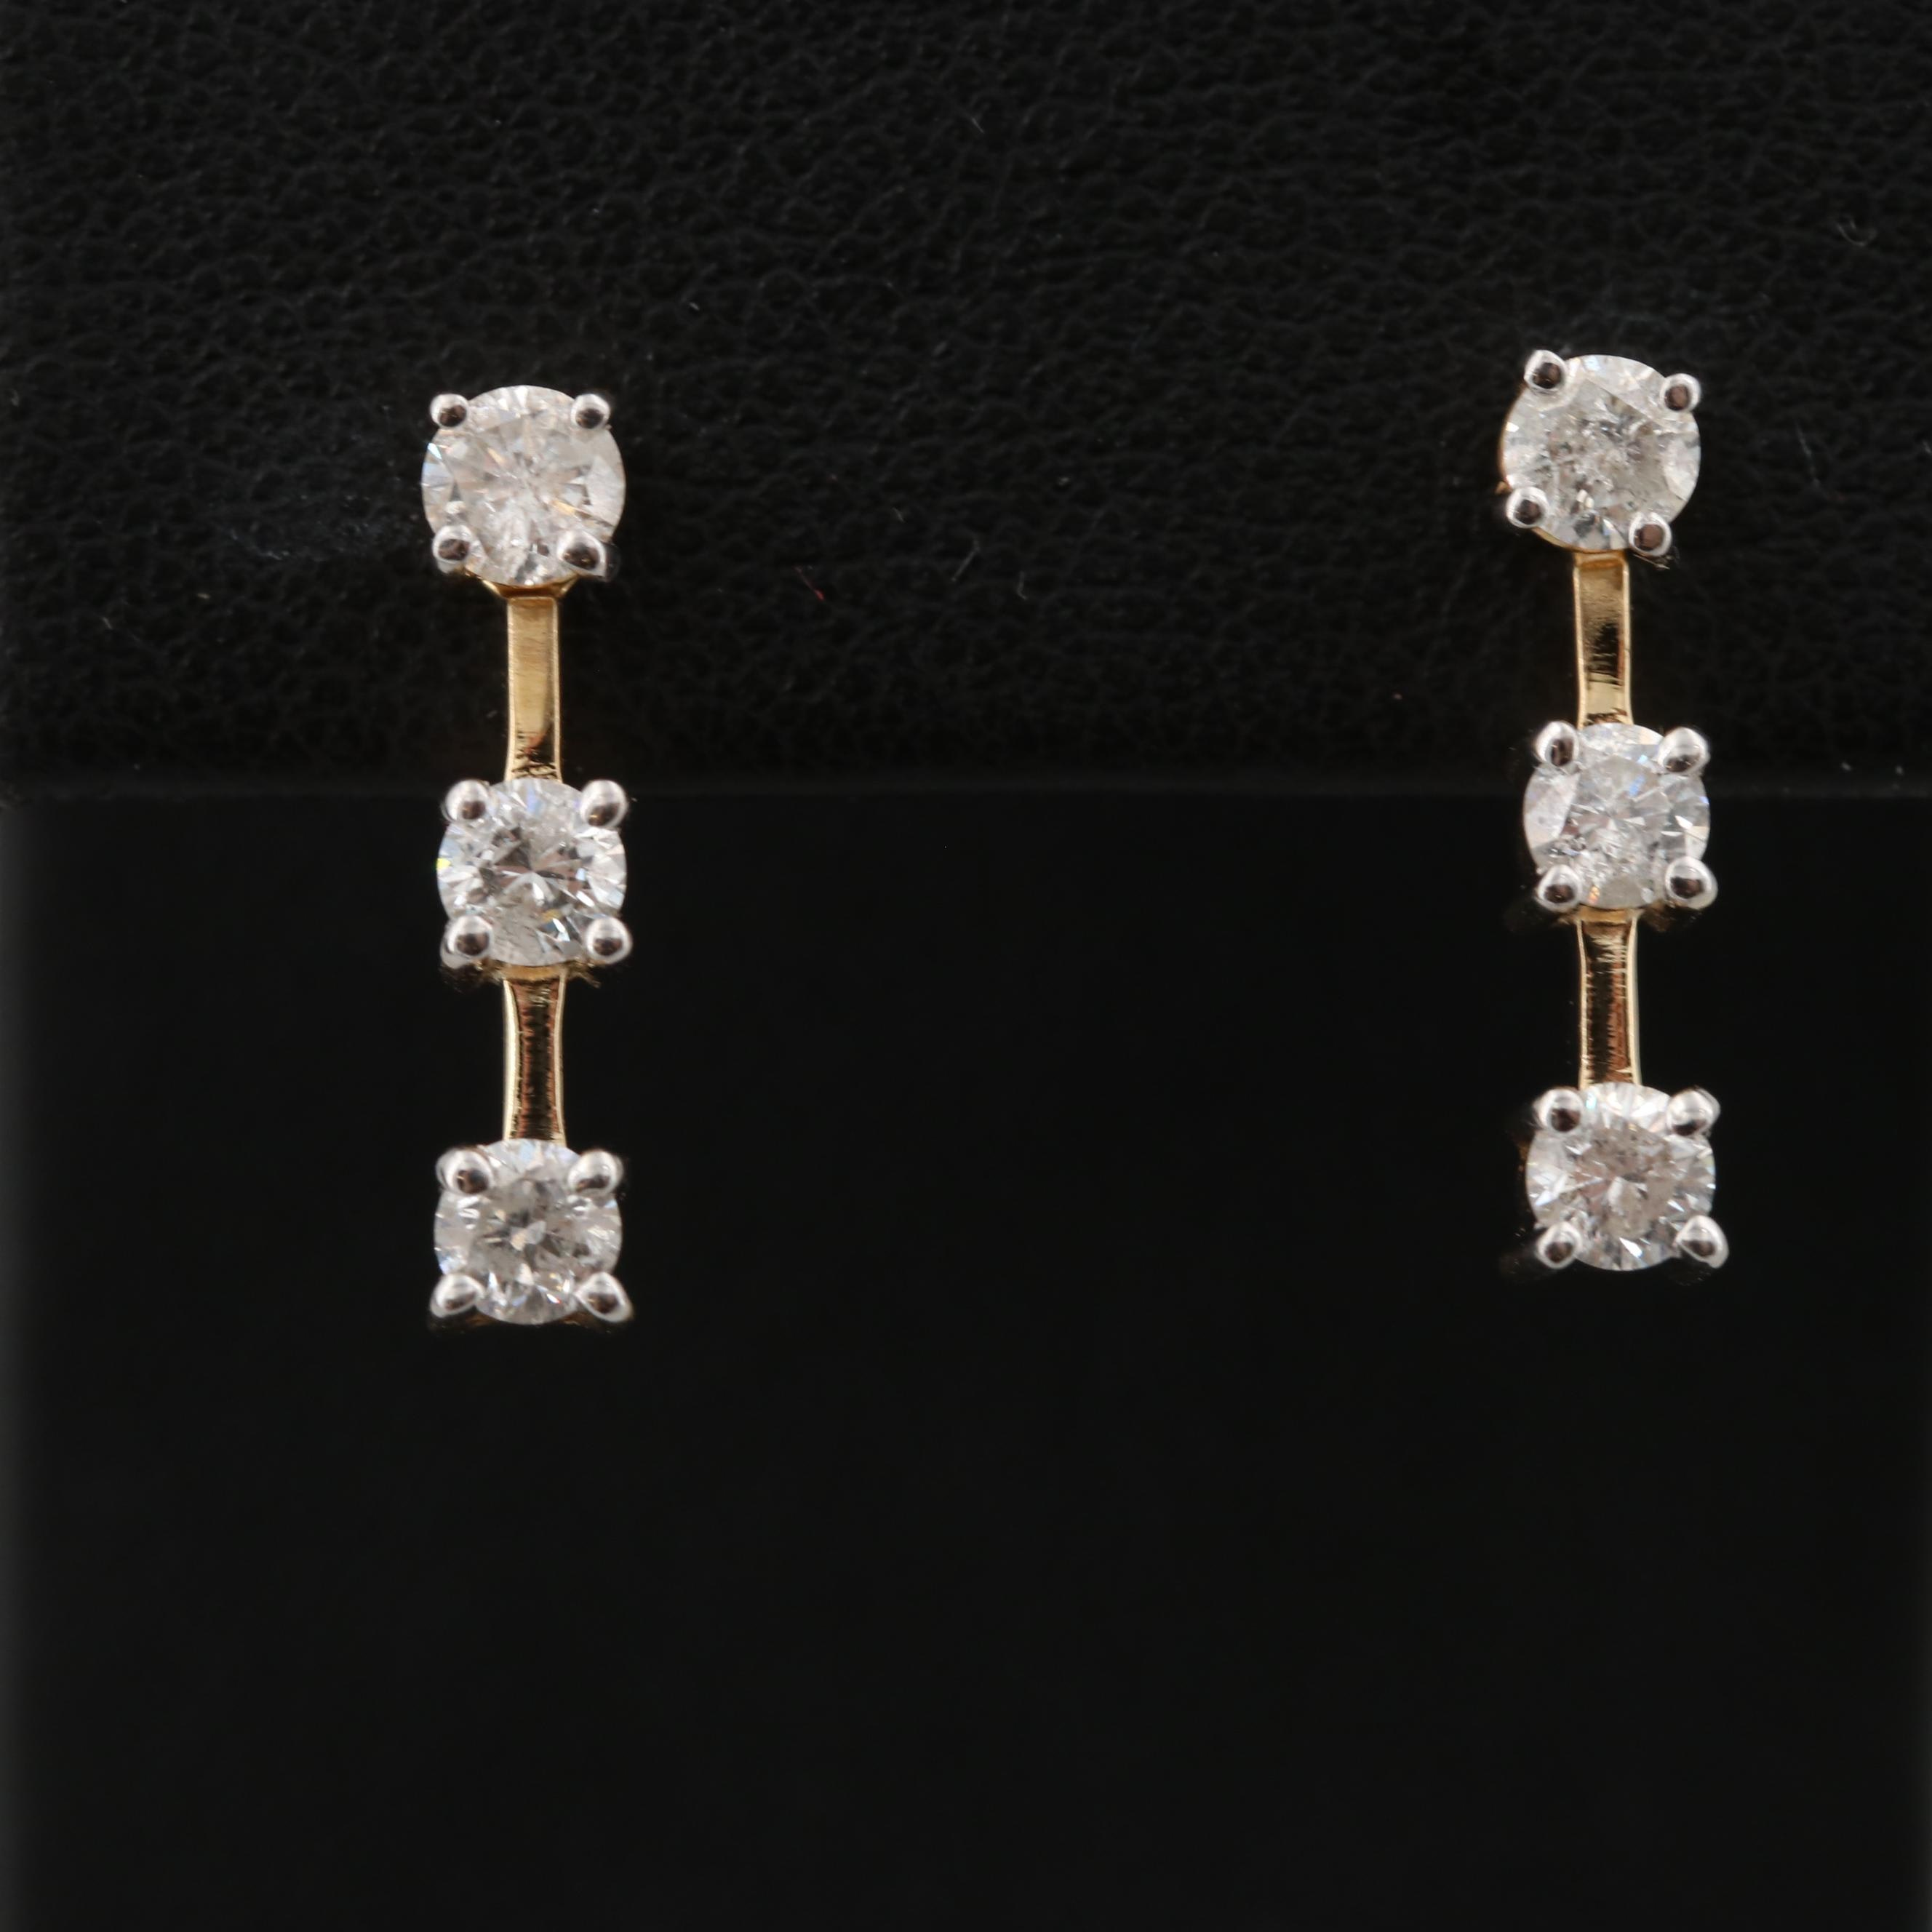 14K Yellow Gold Diamond Stud Earrings with Jackets